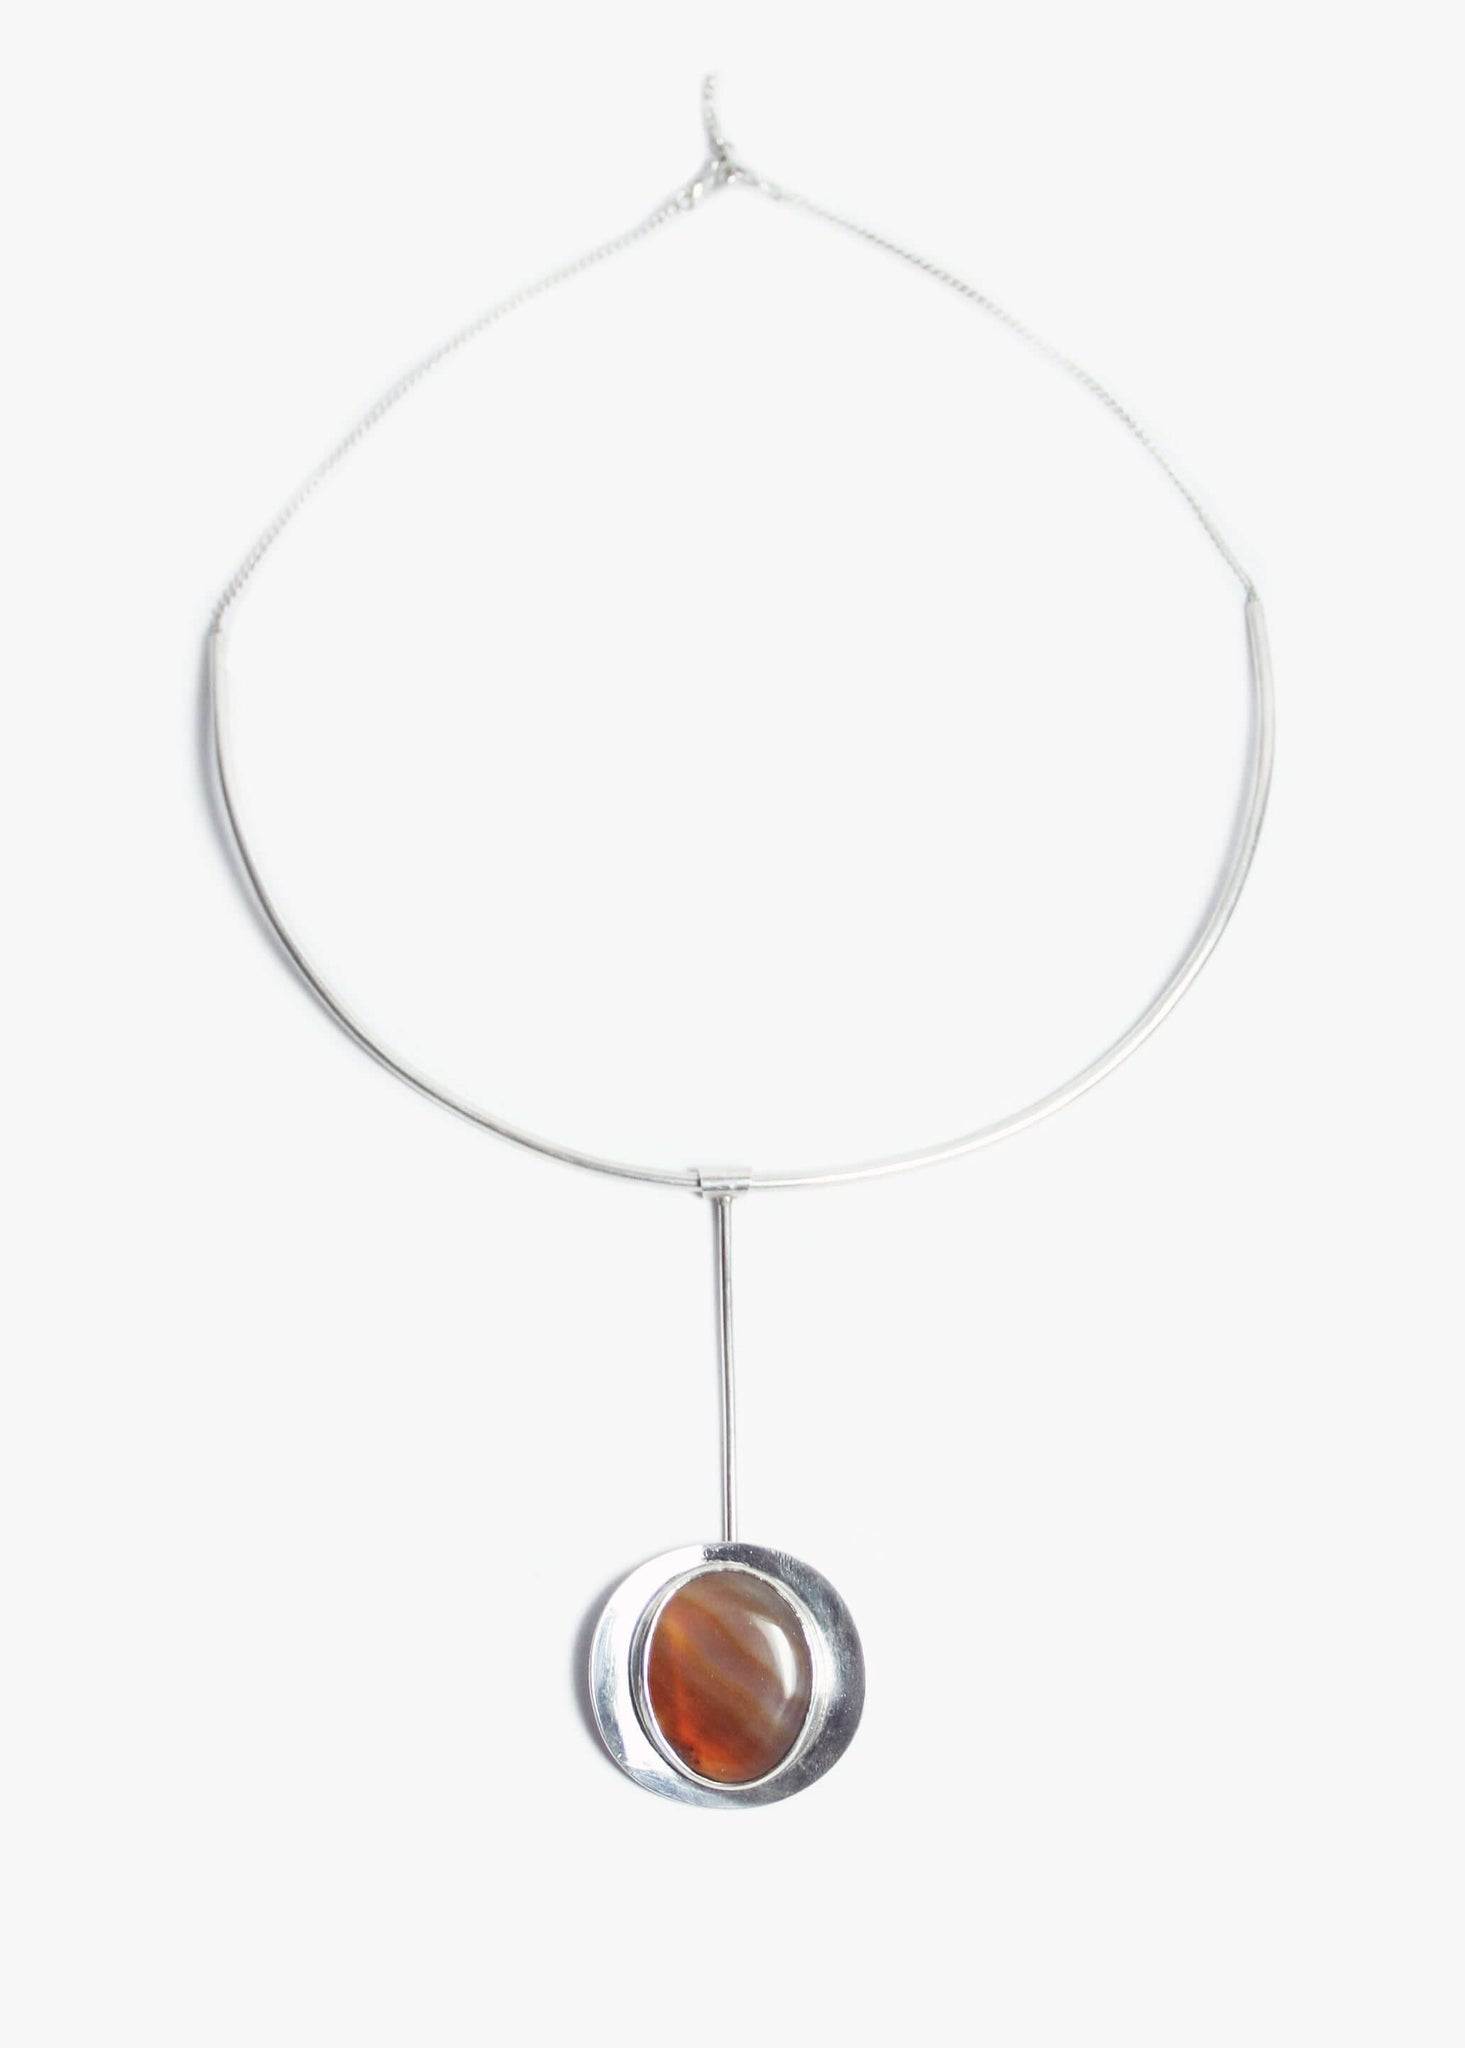 Ettore Necklace with agate, Necklace, Macha Studio, Brooklyn NYC